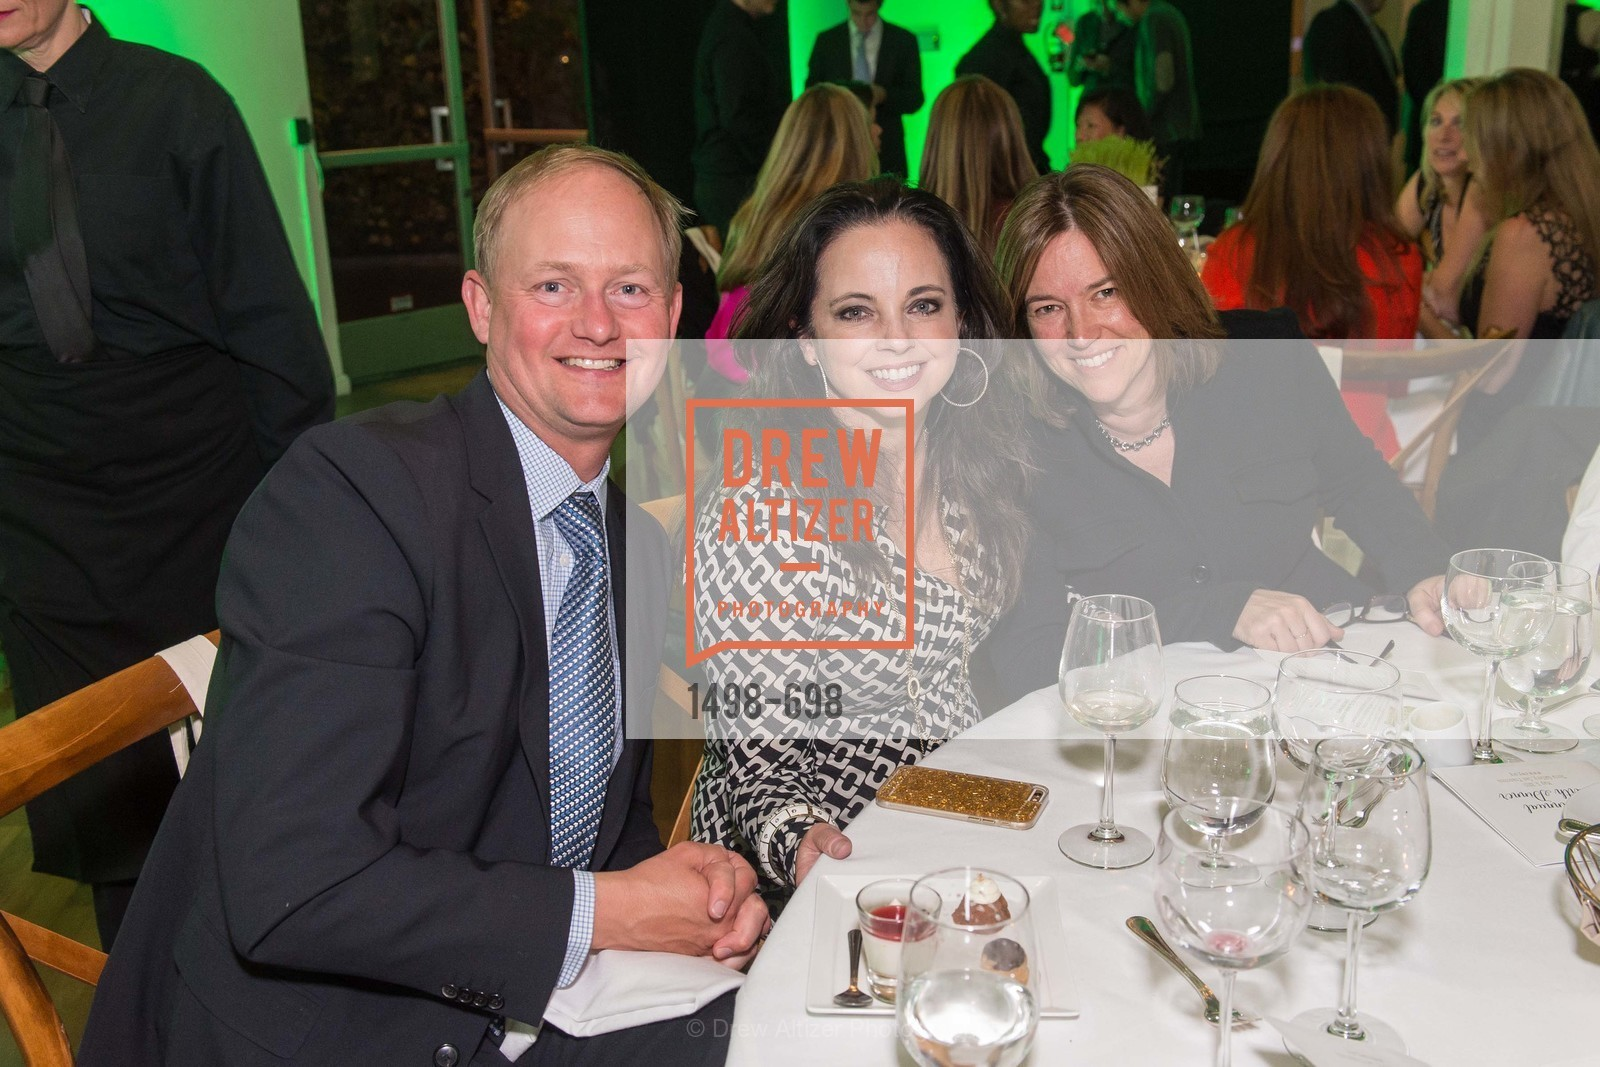 Eric Ralston, Michaela Alioto Pier, Lisa Stanton, EWG's 6th Annual Earth Dinner, US, May 5th, 2015,Drew Altizer, Drew Altizer Photography, full-service agency, private events, San Francisco photographer, photographer california